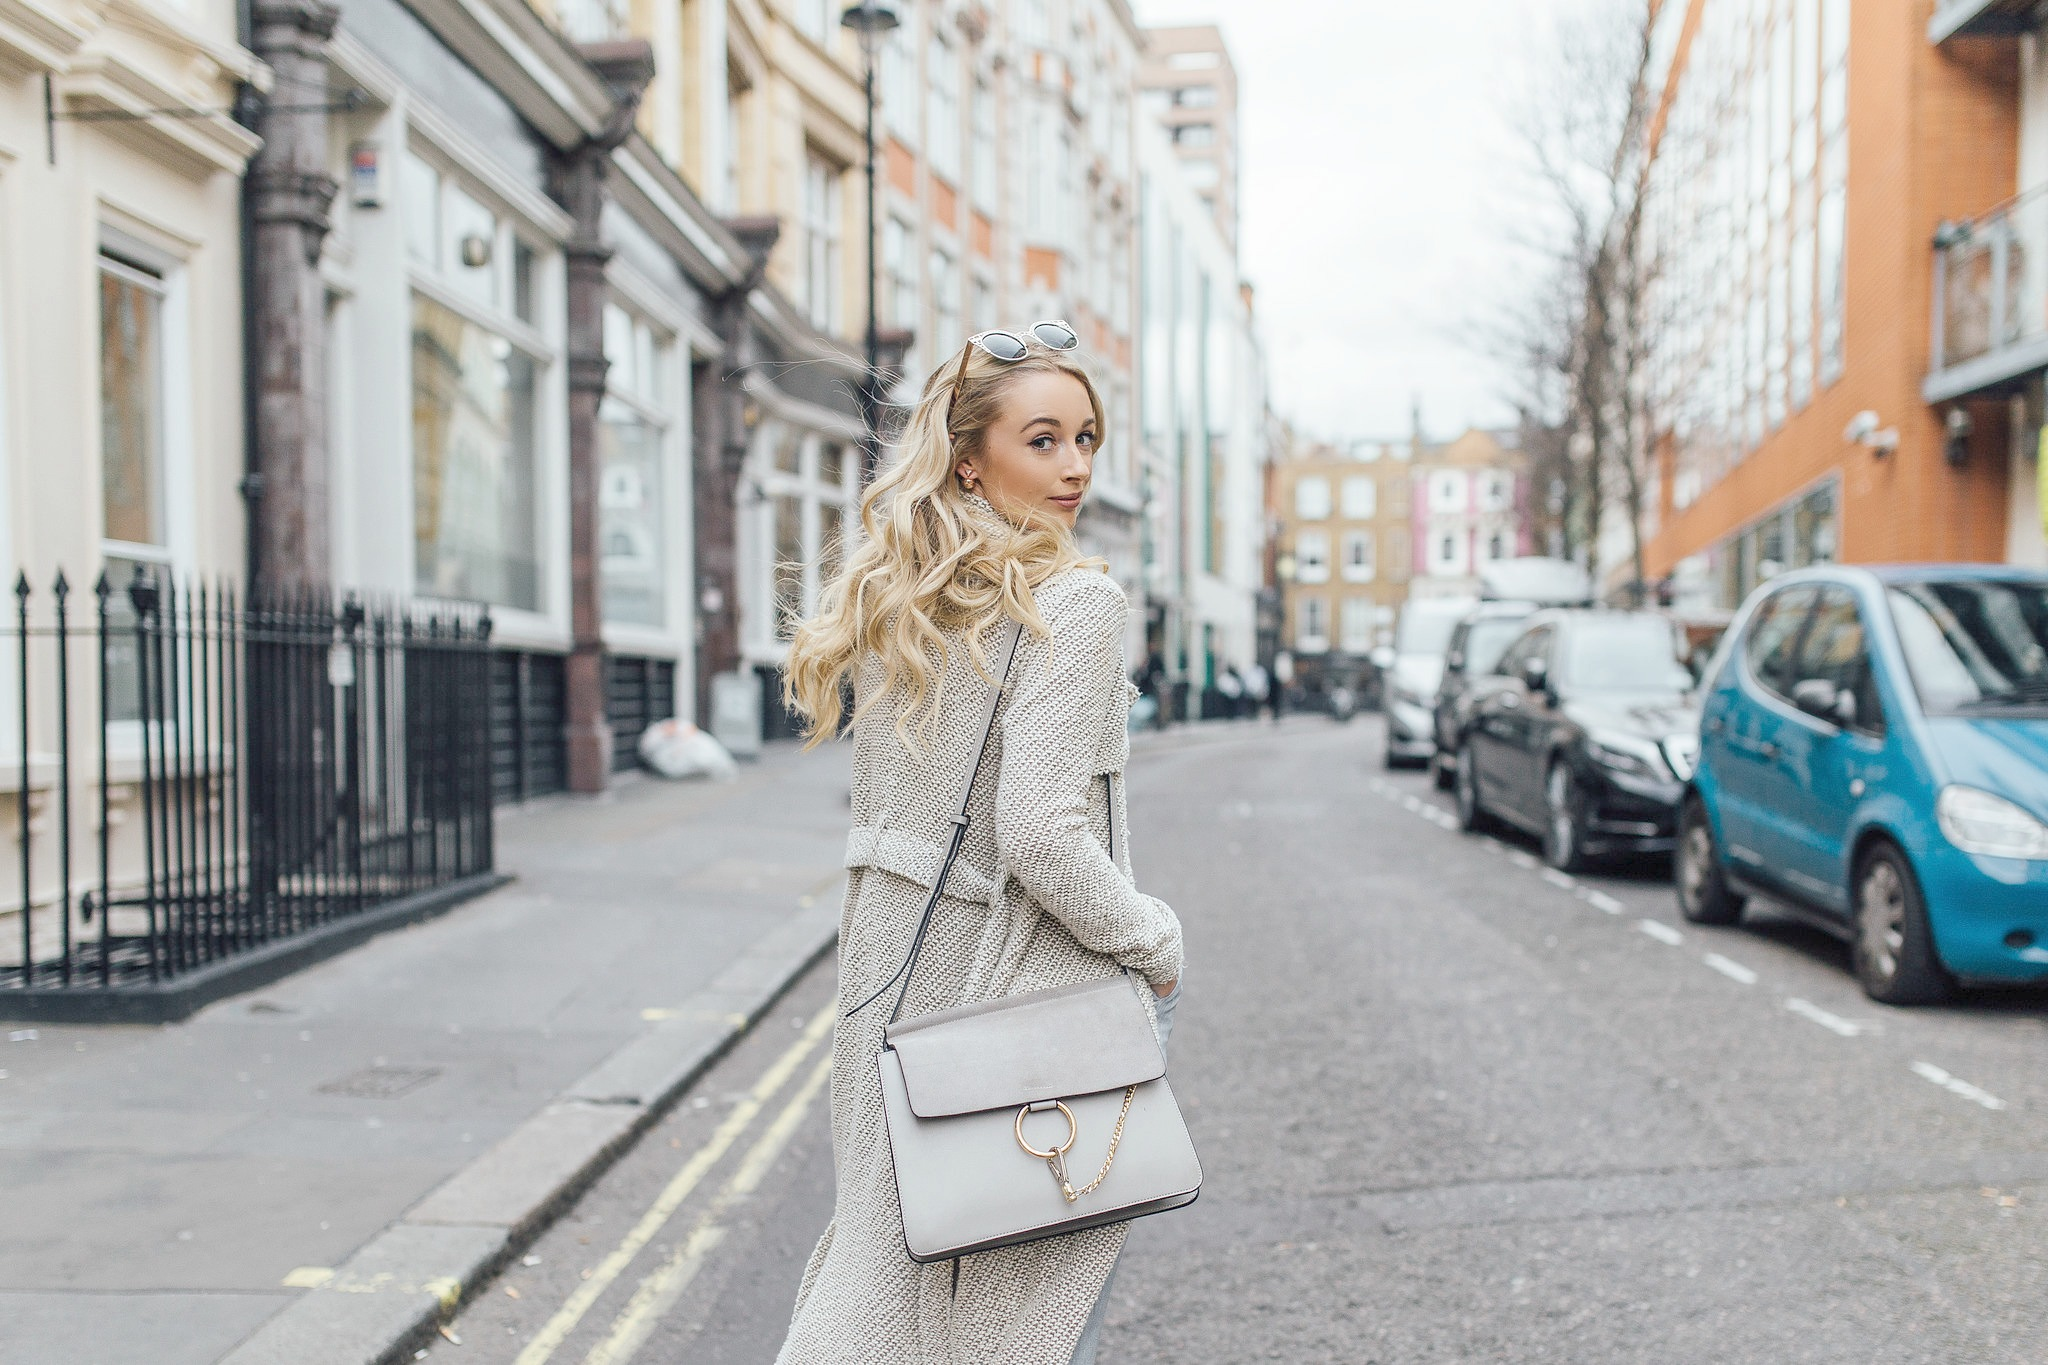 London Fashion Week Day One #ootd fashion mumblr 14